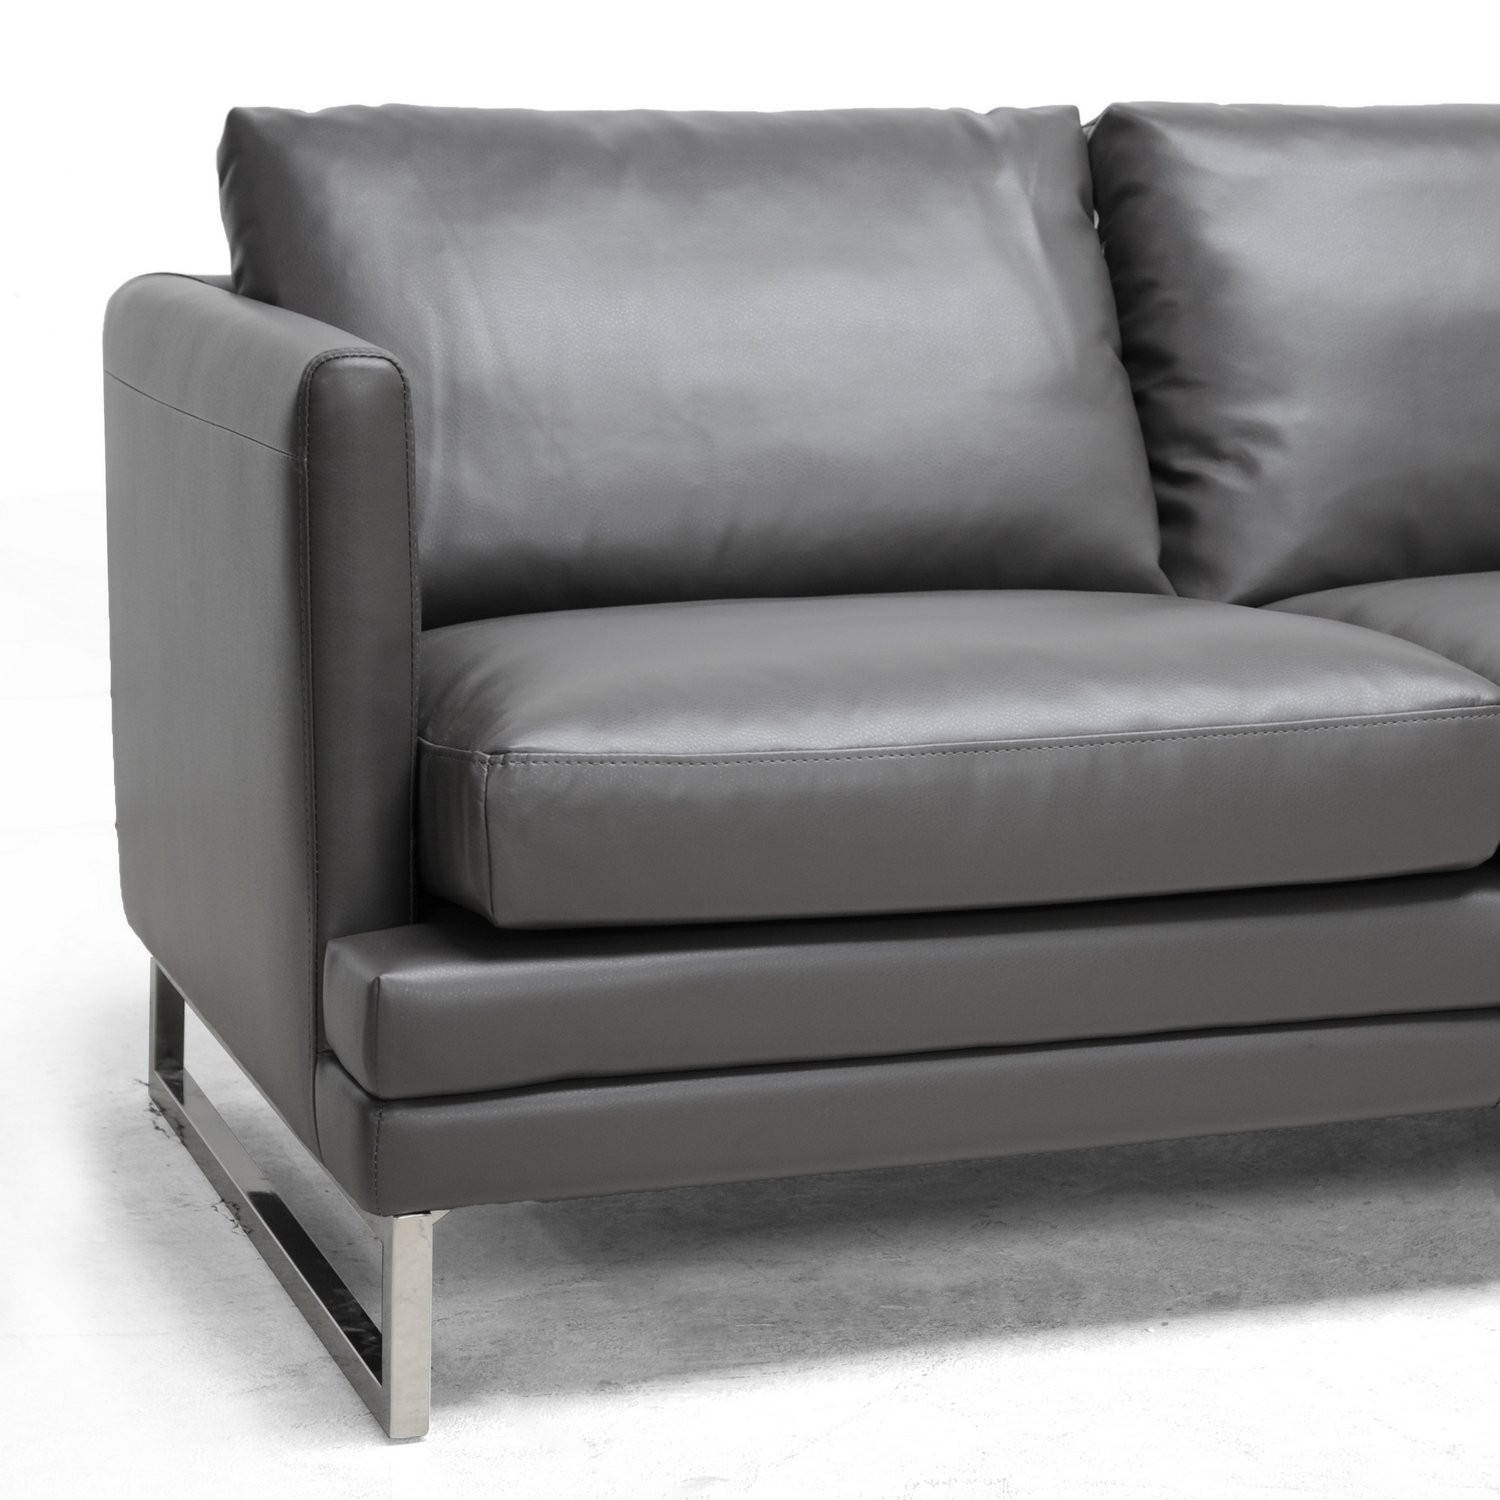 Modern Gray Leather sofa Stunning Grey Leather sofa and Loveseat Elegant Amazon Baxton Studio Gallery